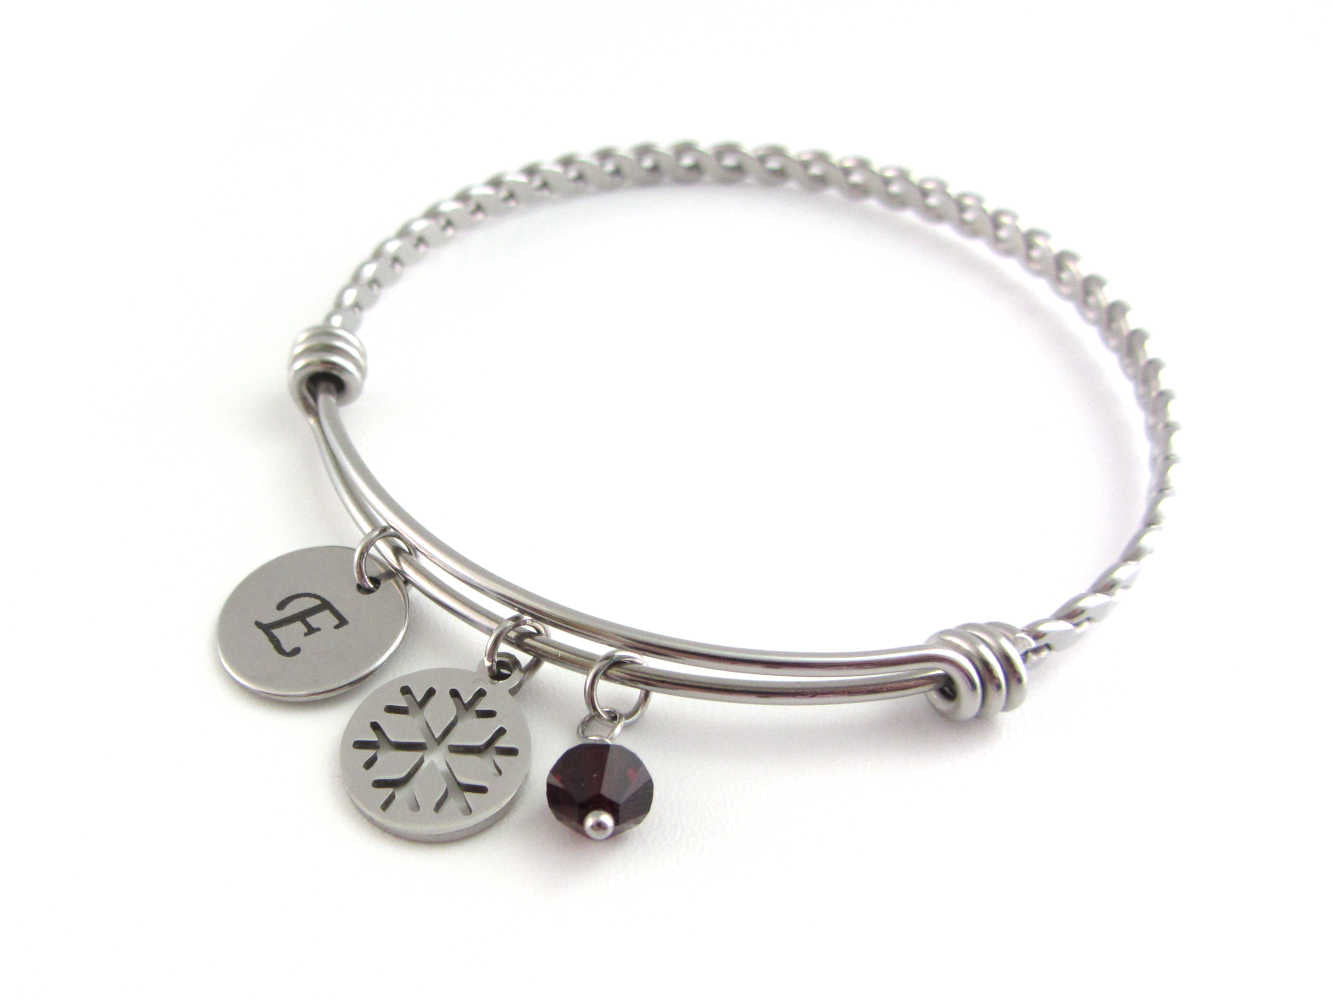 laser engraved capital initial letter disc charm, snowflake charm and a red crystal charm on a bangle with braided twist pattern